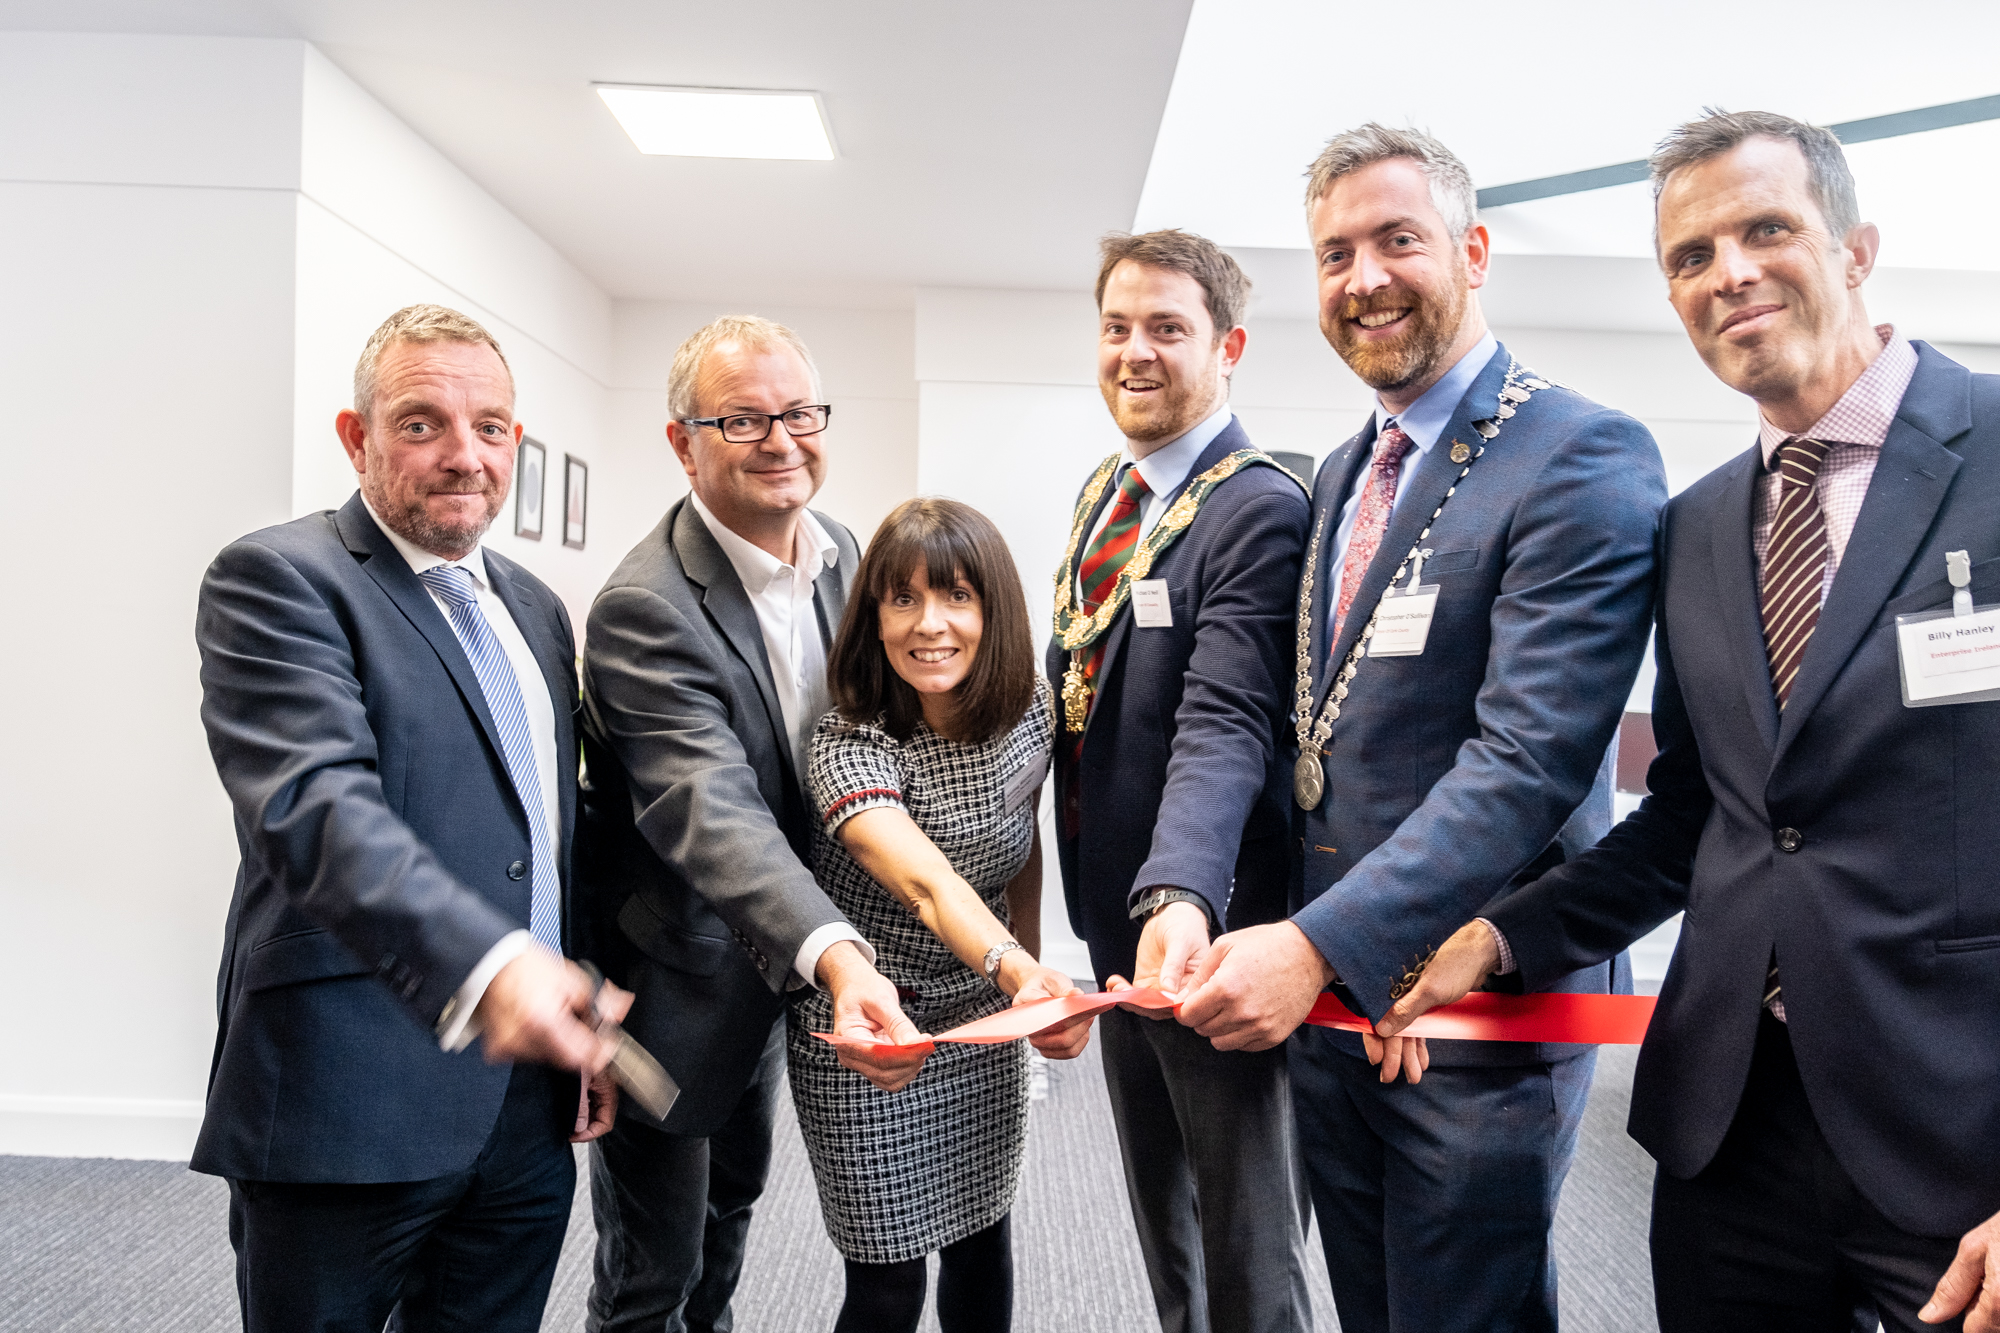 Photo of Global Shares Team cutting the red ribbon for the inauguration